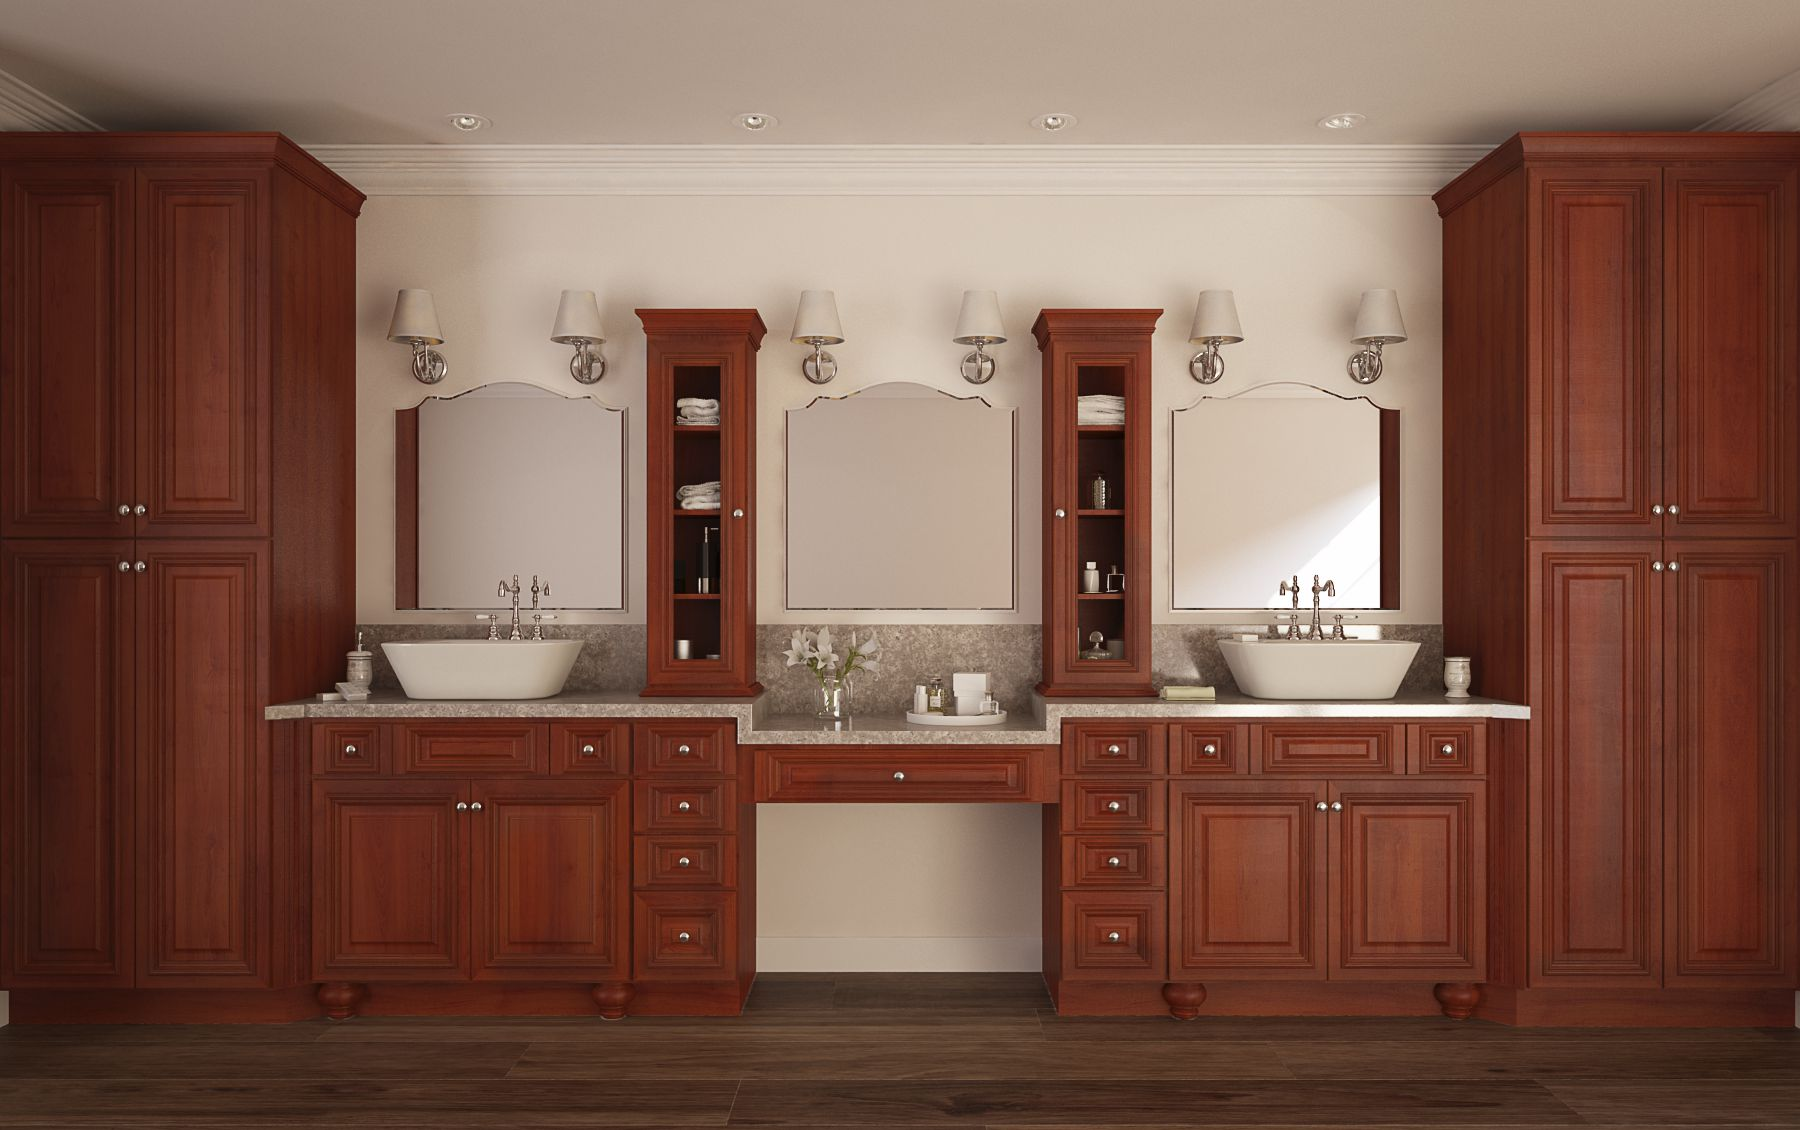 Roosevelt%25252520Mocha%25252520with%25252520Black%25252520Accent%25252520Bathroom%25252520Vanity